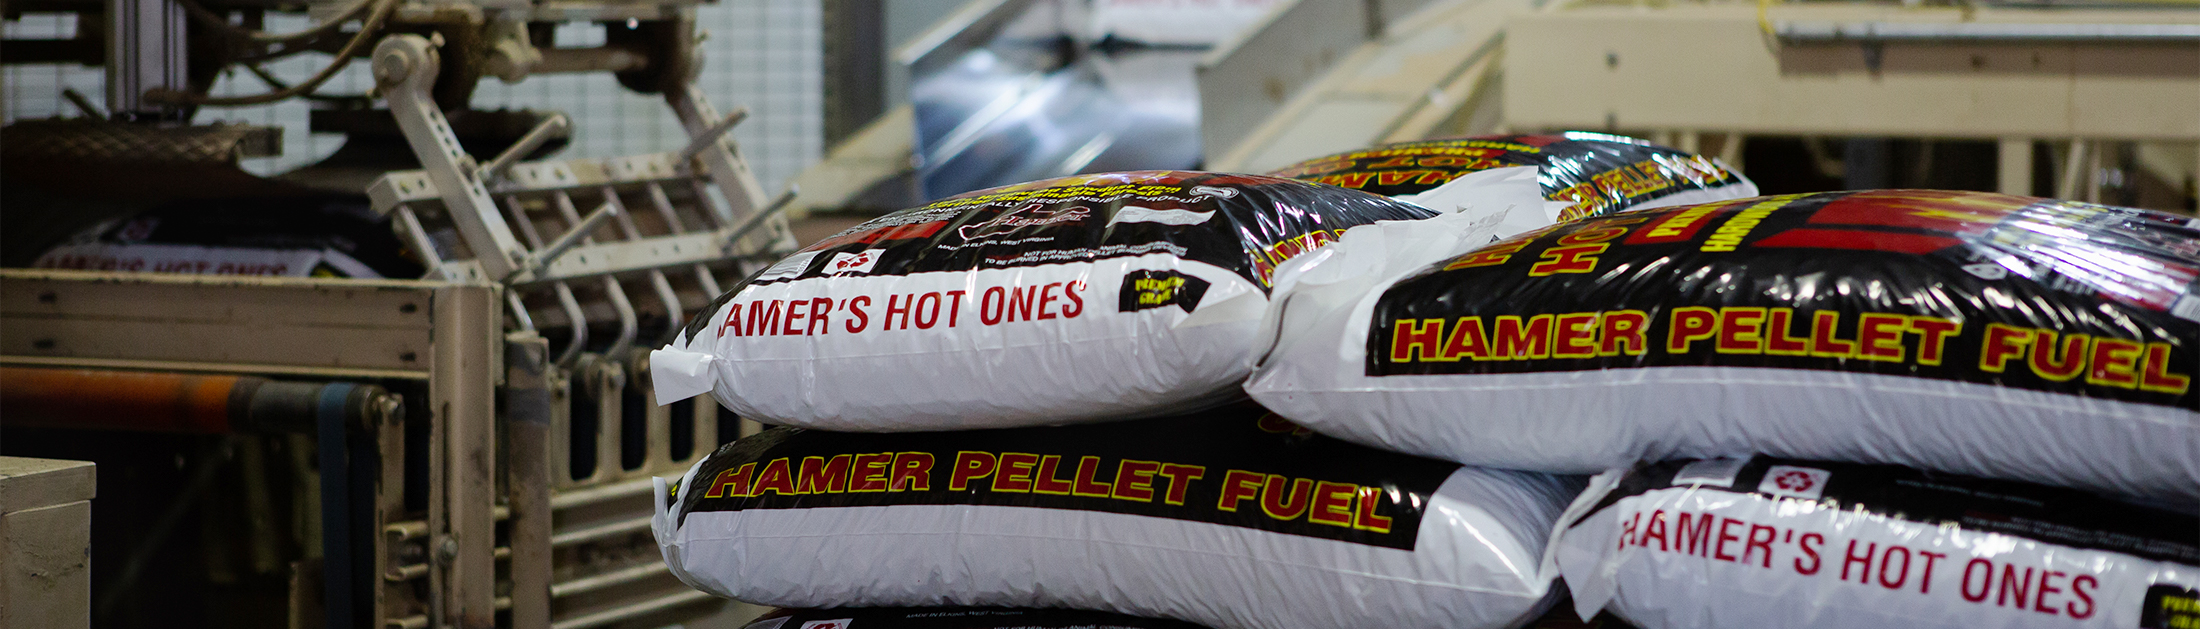 Stacked bags of Hamer's Hot Ones